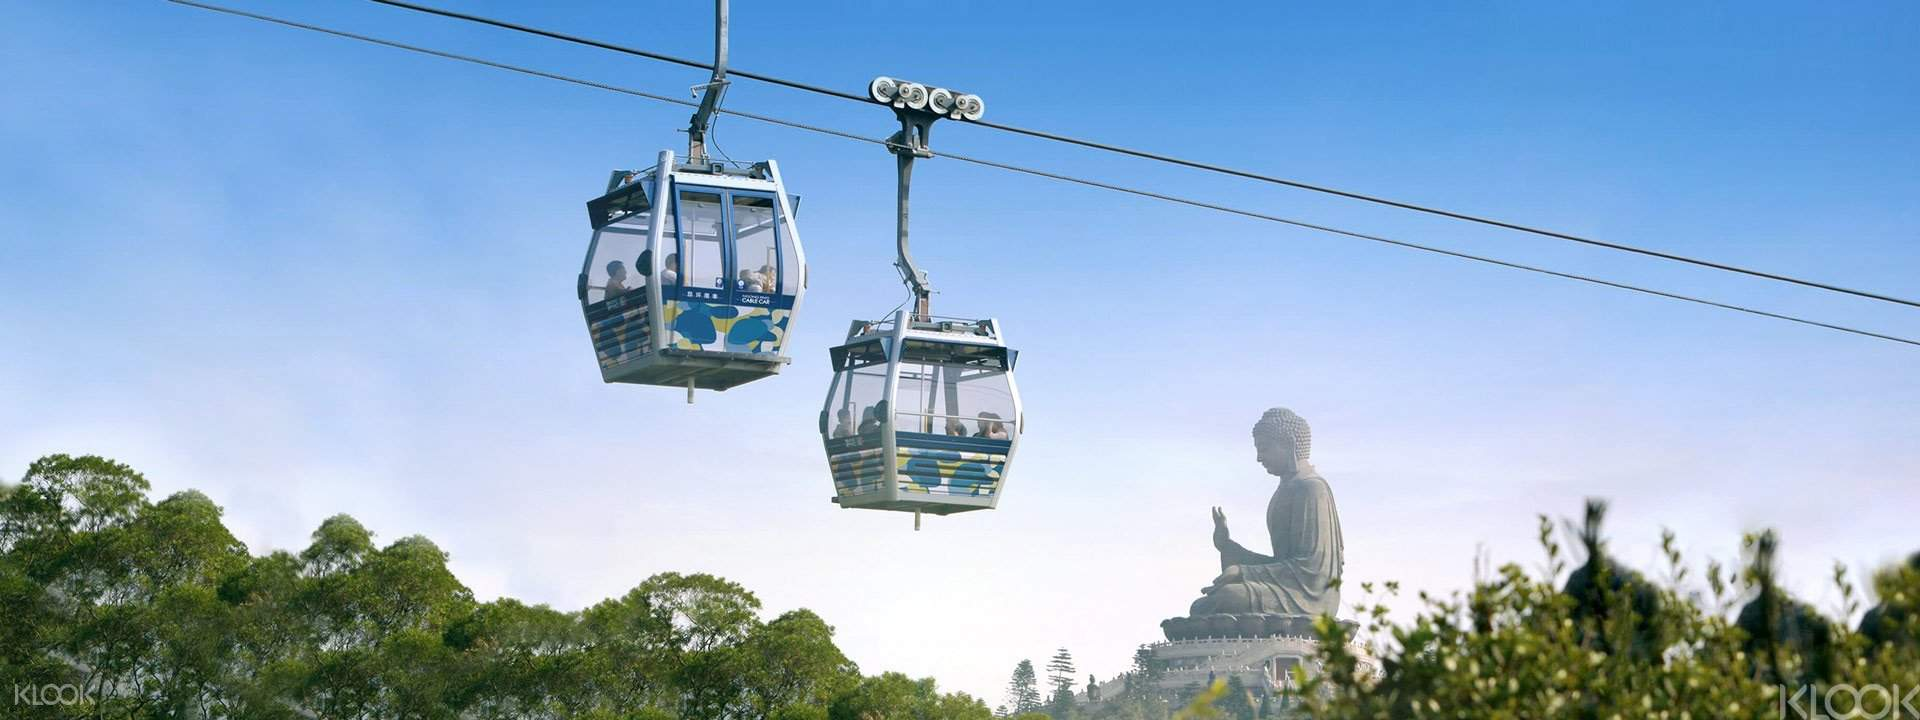 Ngong Ping 360 - Standard Cabin (One Way / Roundtrip)""